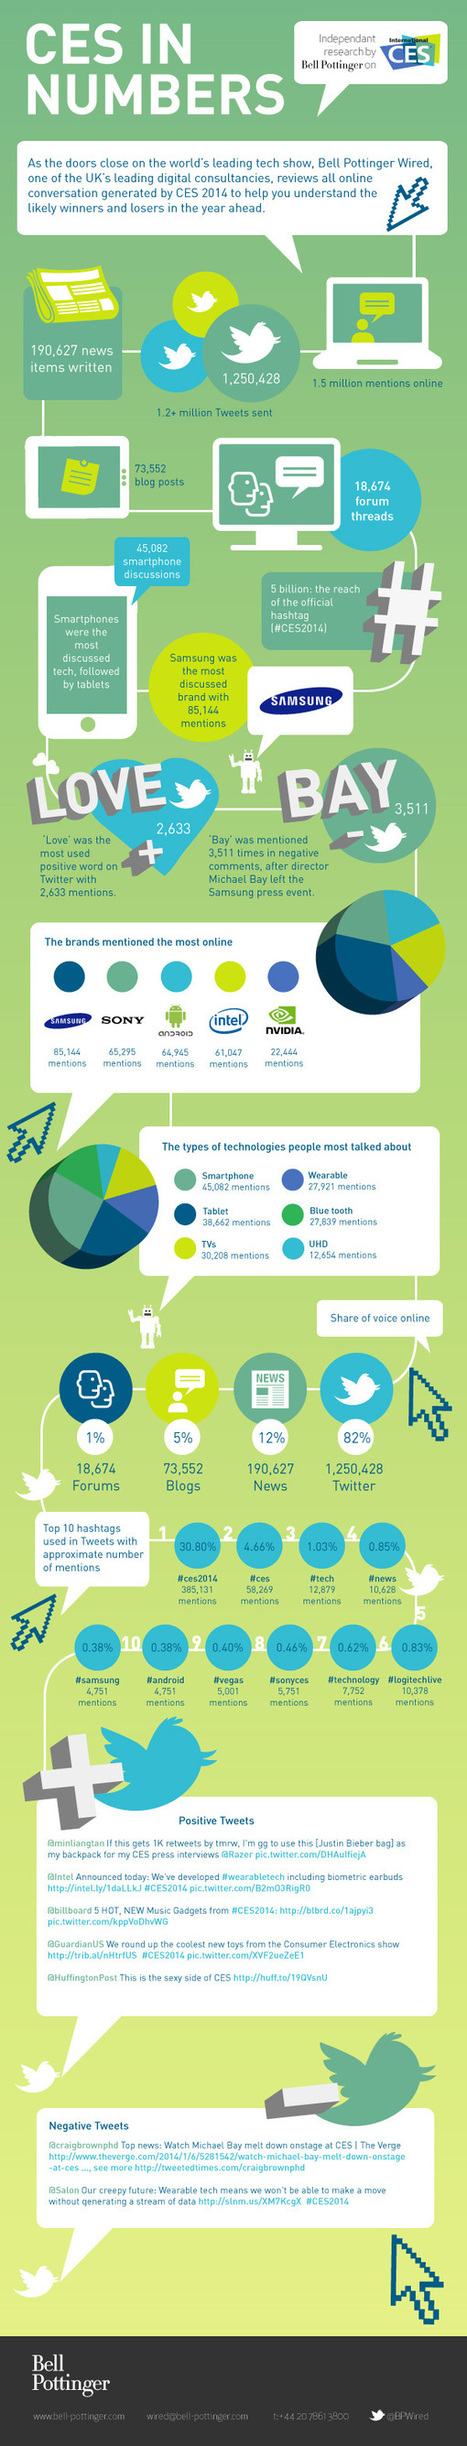 Infographic: The Social Media Winners Of CES 2014   Marketing Technology   Scoop.it